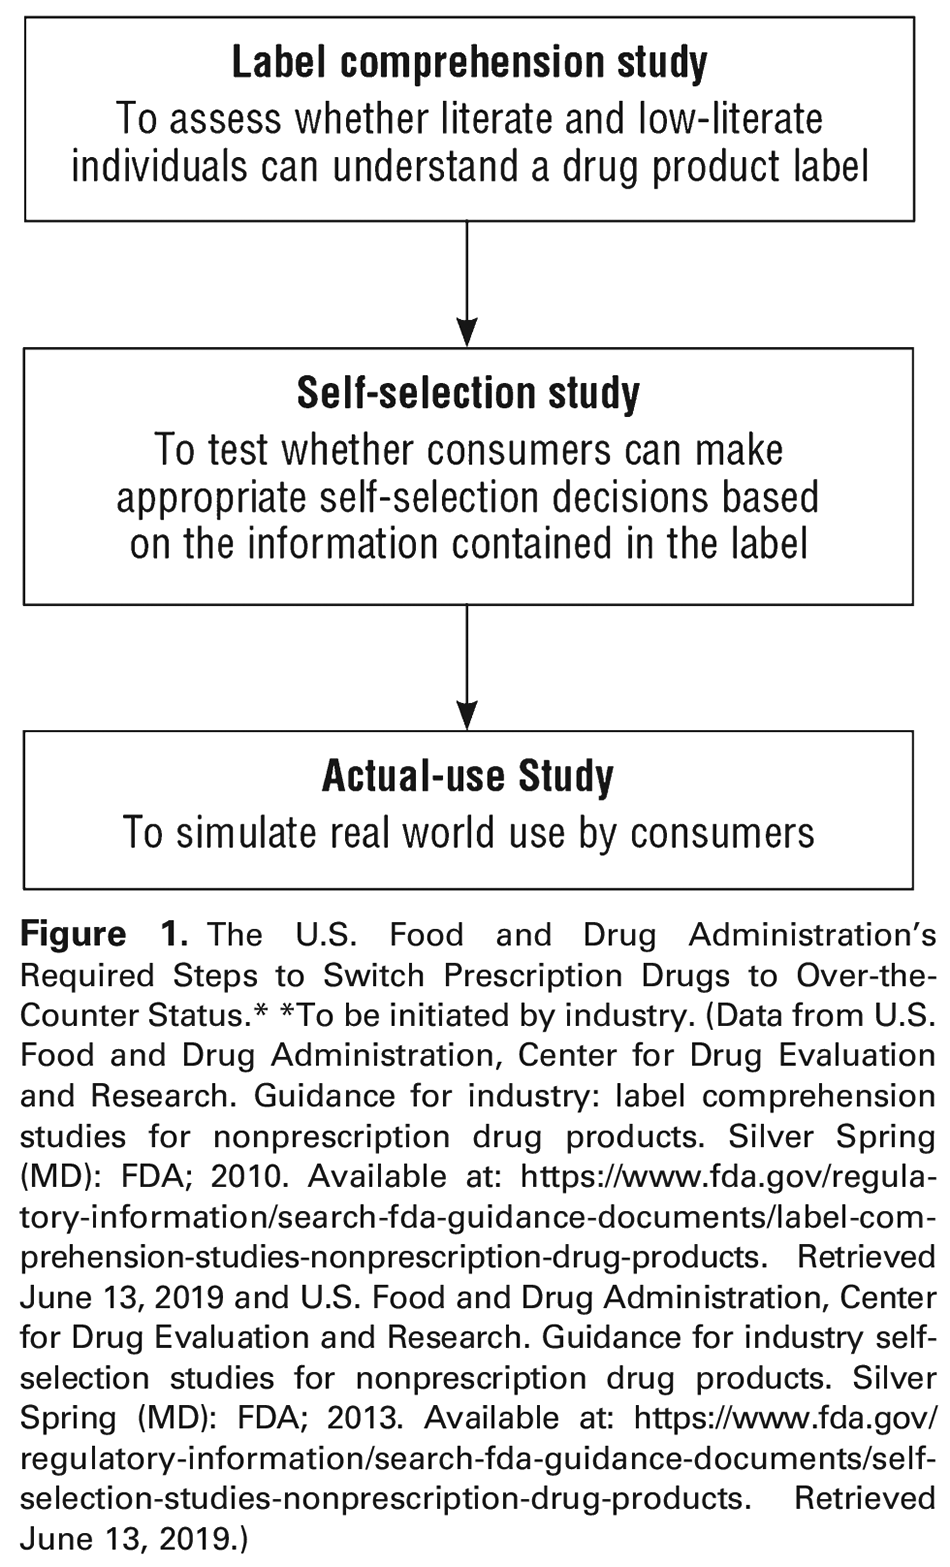 Figure 1. The U.S. Food and Drug Administration's Required Steps to Switch Prescription Drugs to Over-the-Counter Status.* *To be initiated by industry. (Data from U.S. Food and Drug Administration, Center for Drug Evaluation and Research. Guidance for industry: label comprehension studies for nonprescription drug products. Silver Spring (MD): FDA; 2010. Available at: https://www.fda.gov/regulatory-information/search-fda-guidance-documents/label-comprehension-studies-nonprescription-drug-products . Retrieved June 13, 2019 and U.S. Food and Drug Administration, Center for Drug Evaluation and Research. Guidance for industry self-selection studies for nonprescription drug products. Silver Spring (MD): FDA; 2013. Available at: https://www.fda.gov/regulatory-information/search-fda-guidance-documents/self-selection-studies-nonprescription-drug-products . Retrieved June 13, 2019.)